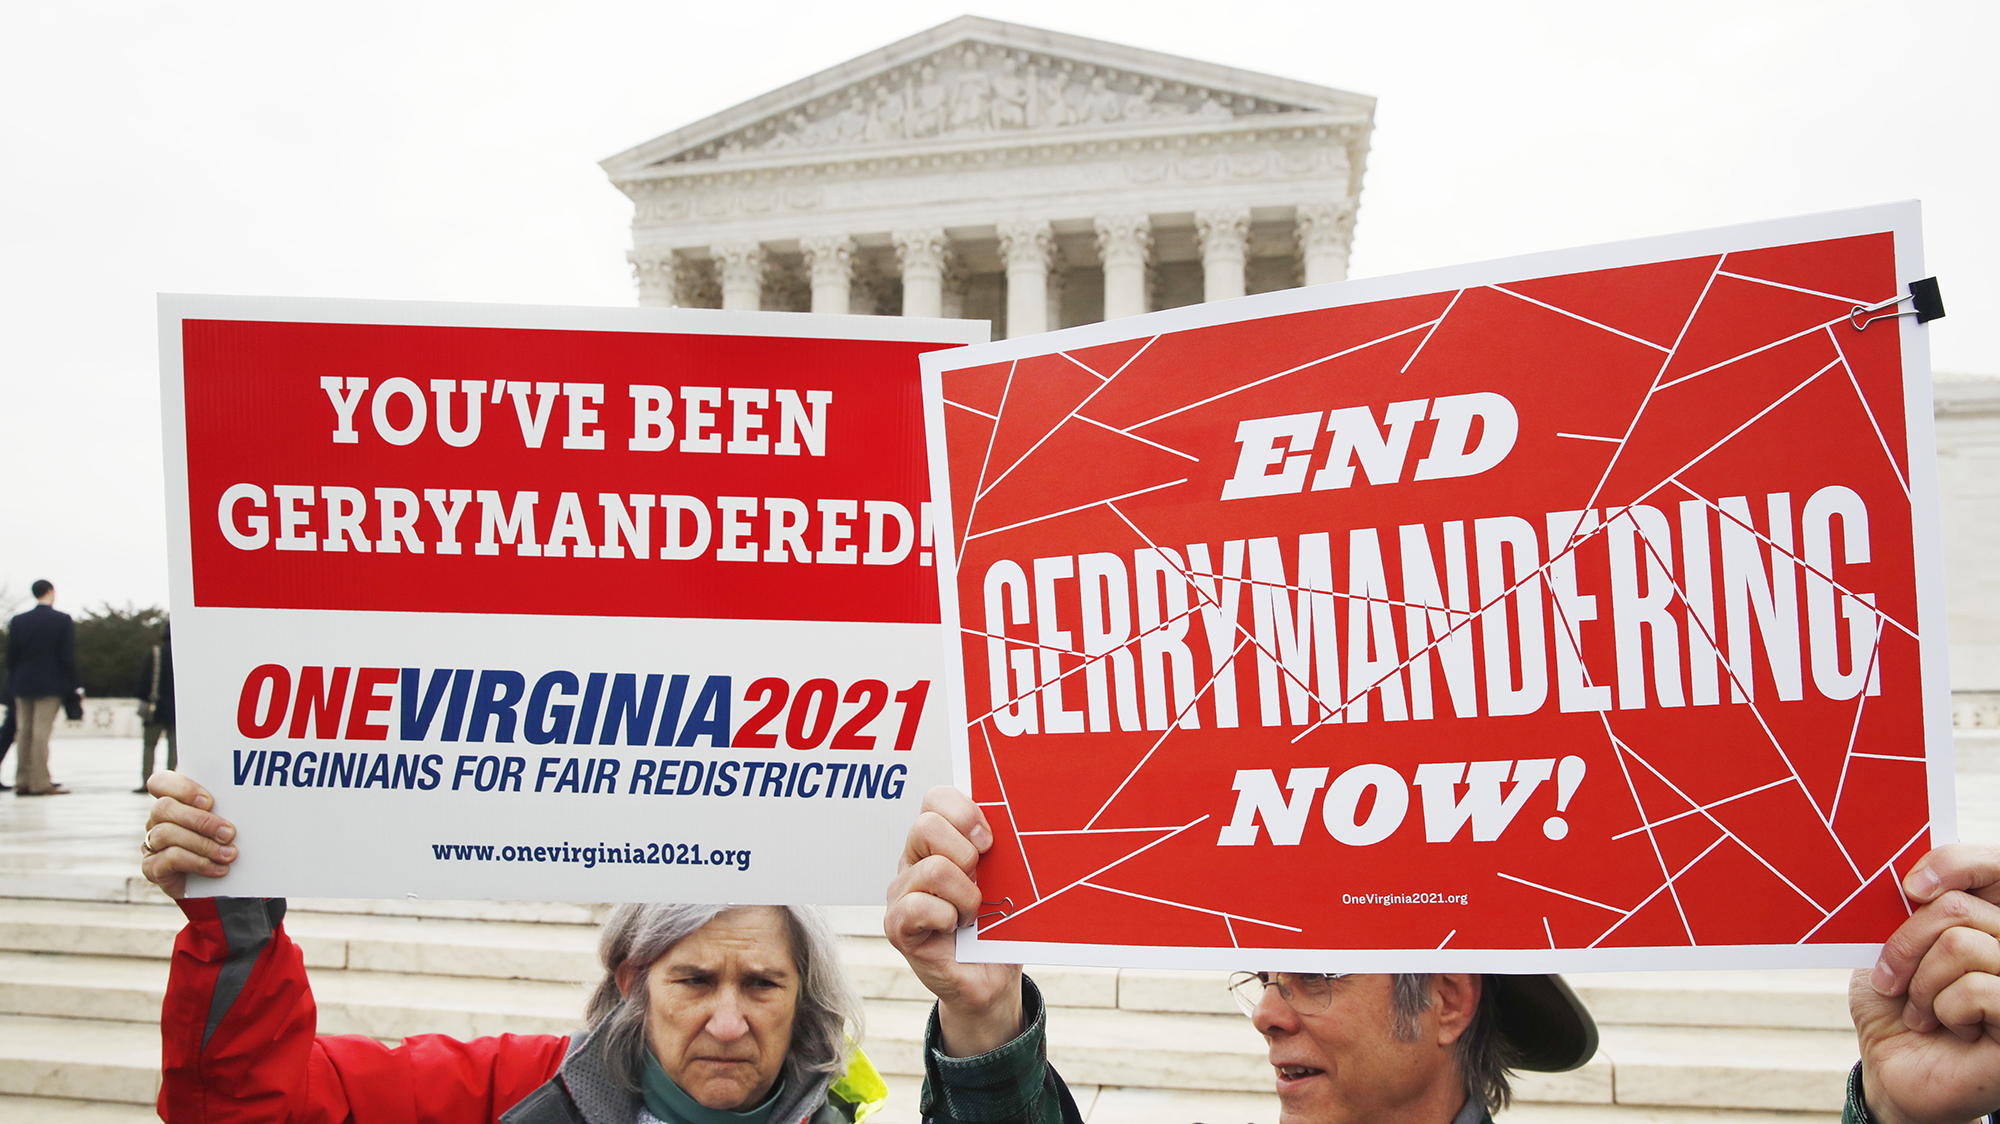 Supreme Court issues ruling on gerrymandering case